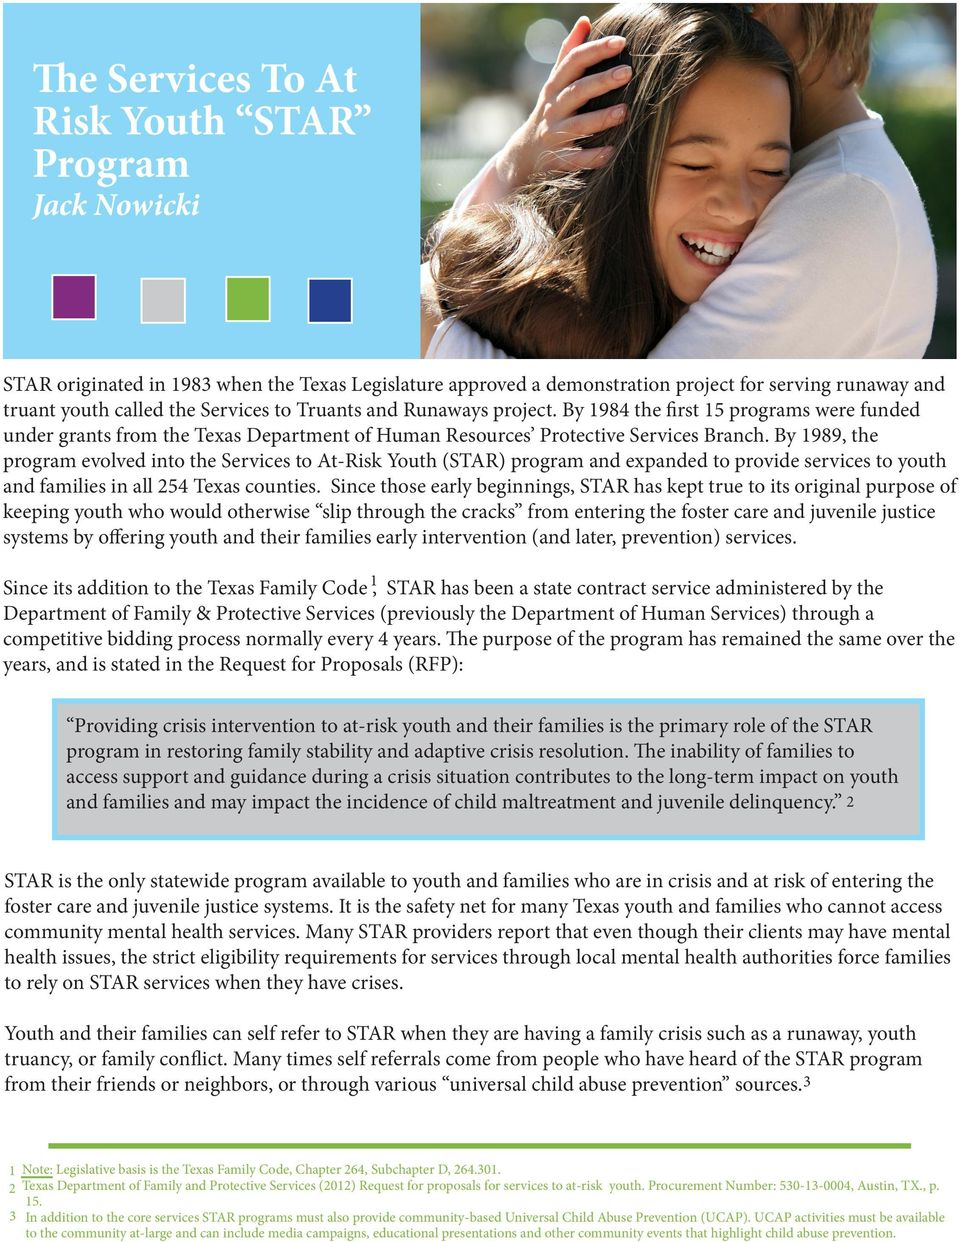 By 1989, the program evolved into the Services to At-Risk Youth (STAR) program and expanded to provide services to youth and families in all 254 Texas counties.